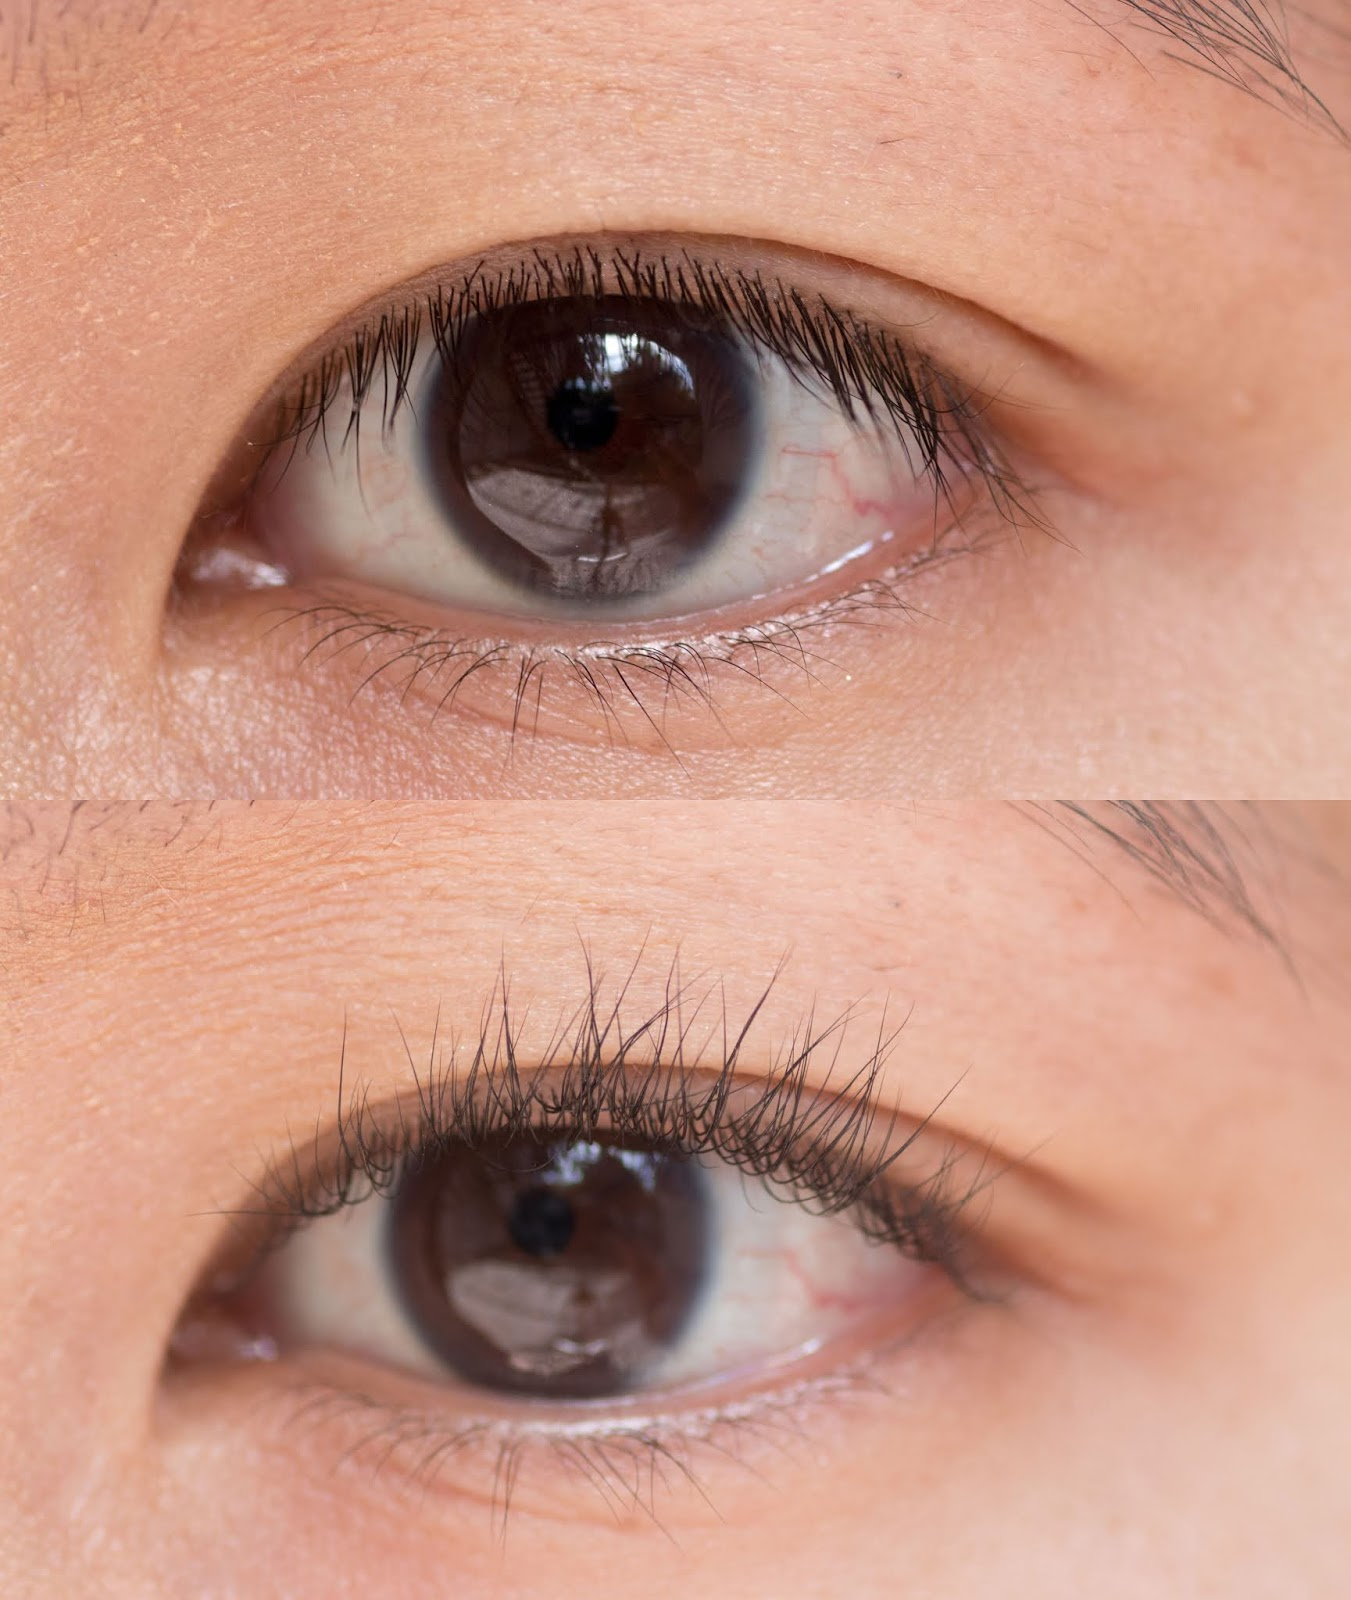 Glossier Lash Slick Mascara Before Mascara